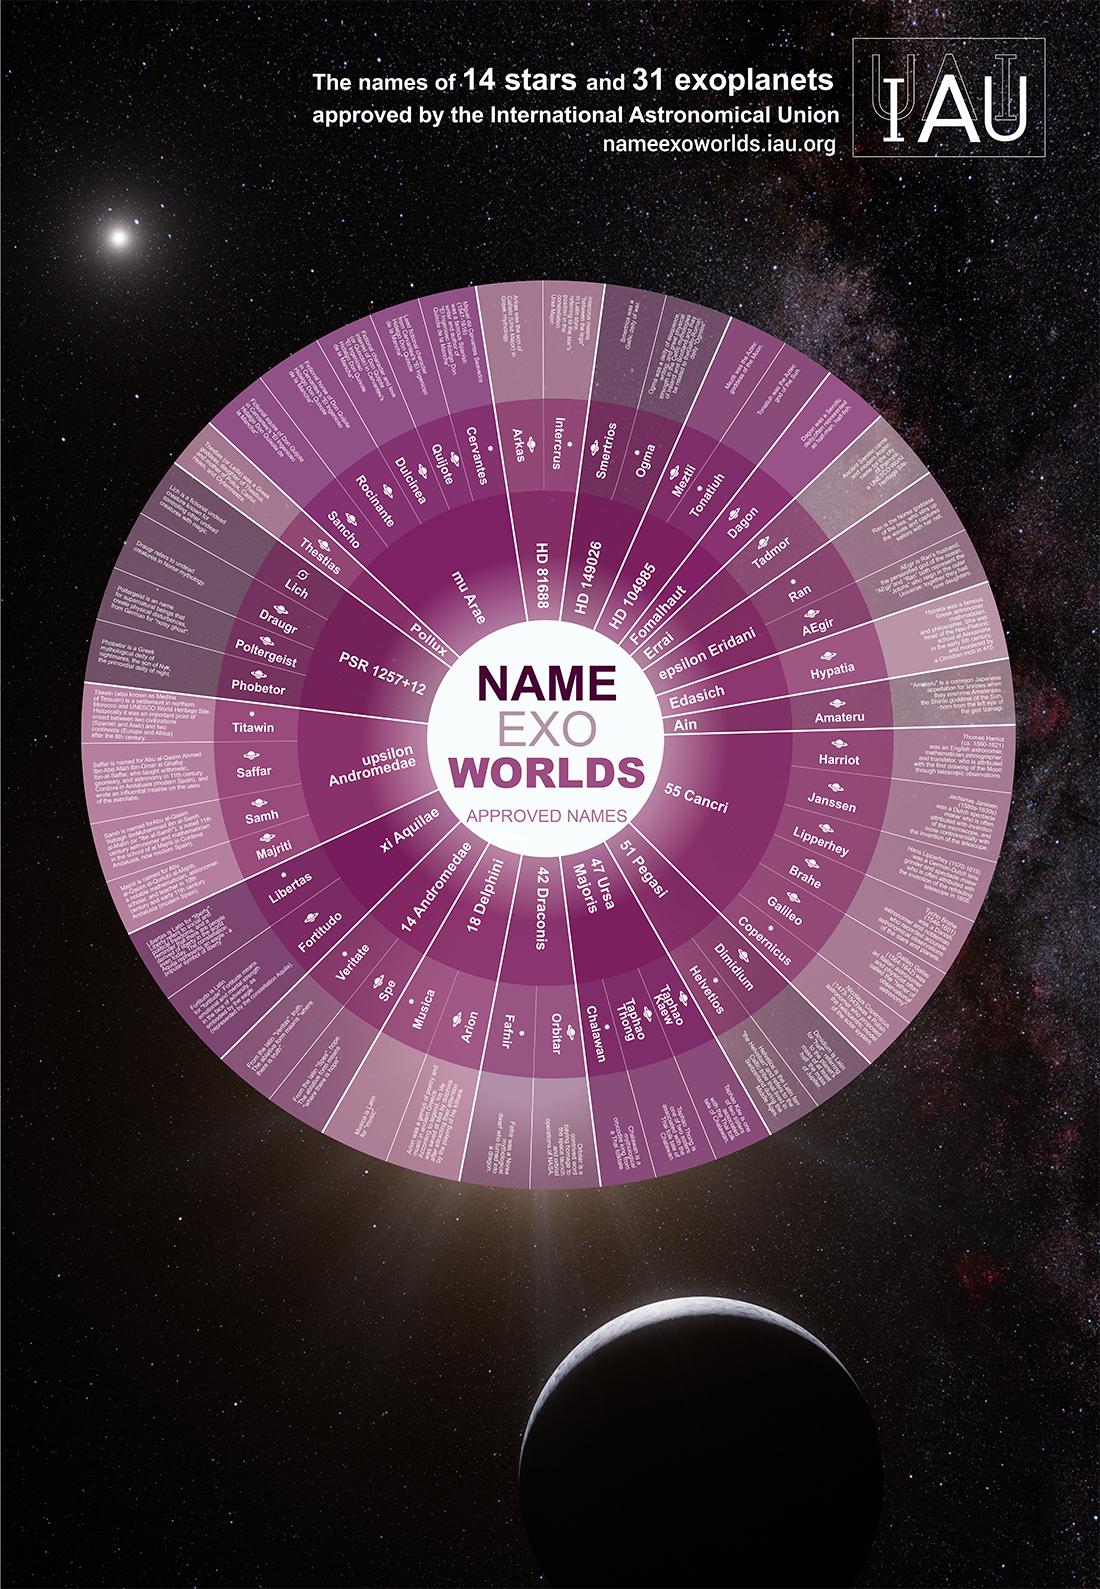 NameExoWorlds2015_2.png